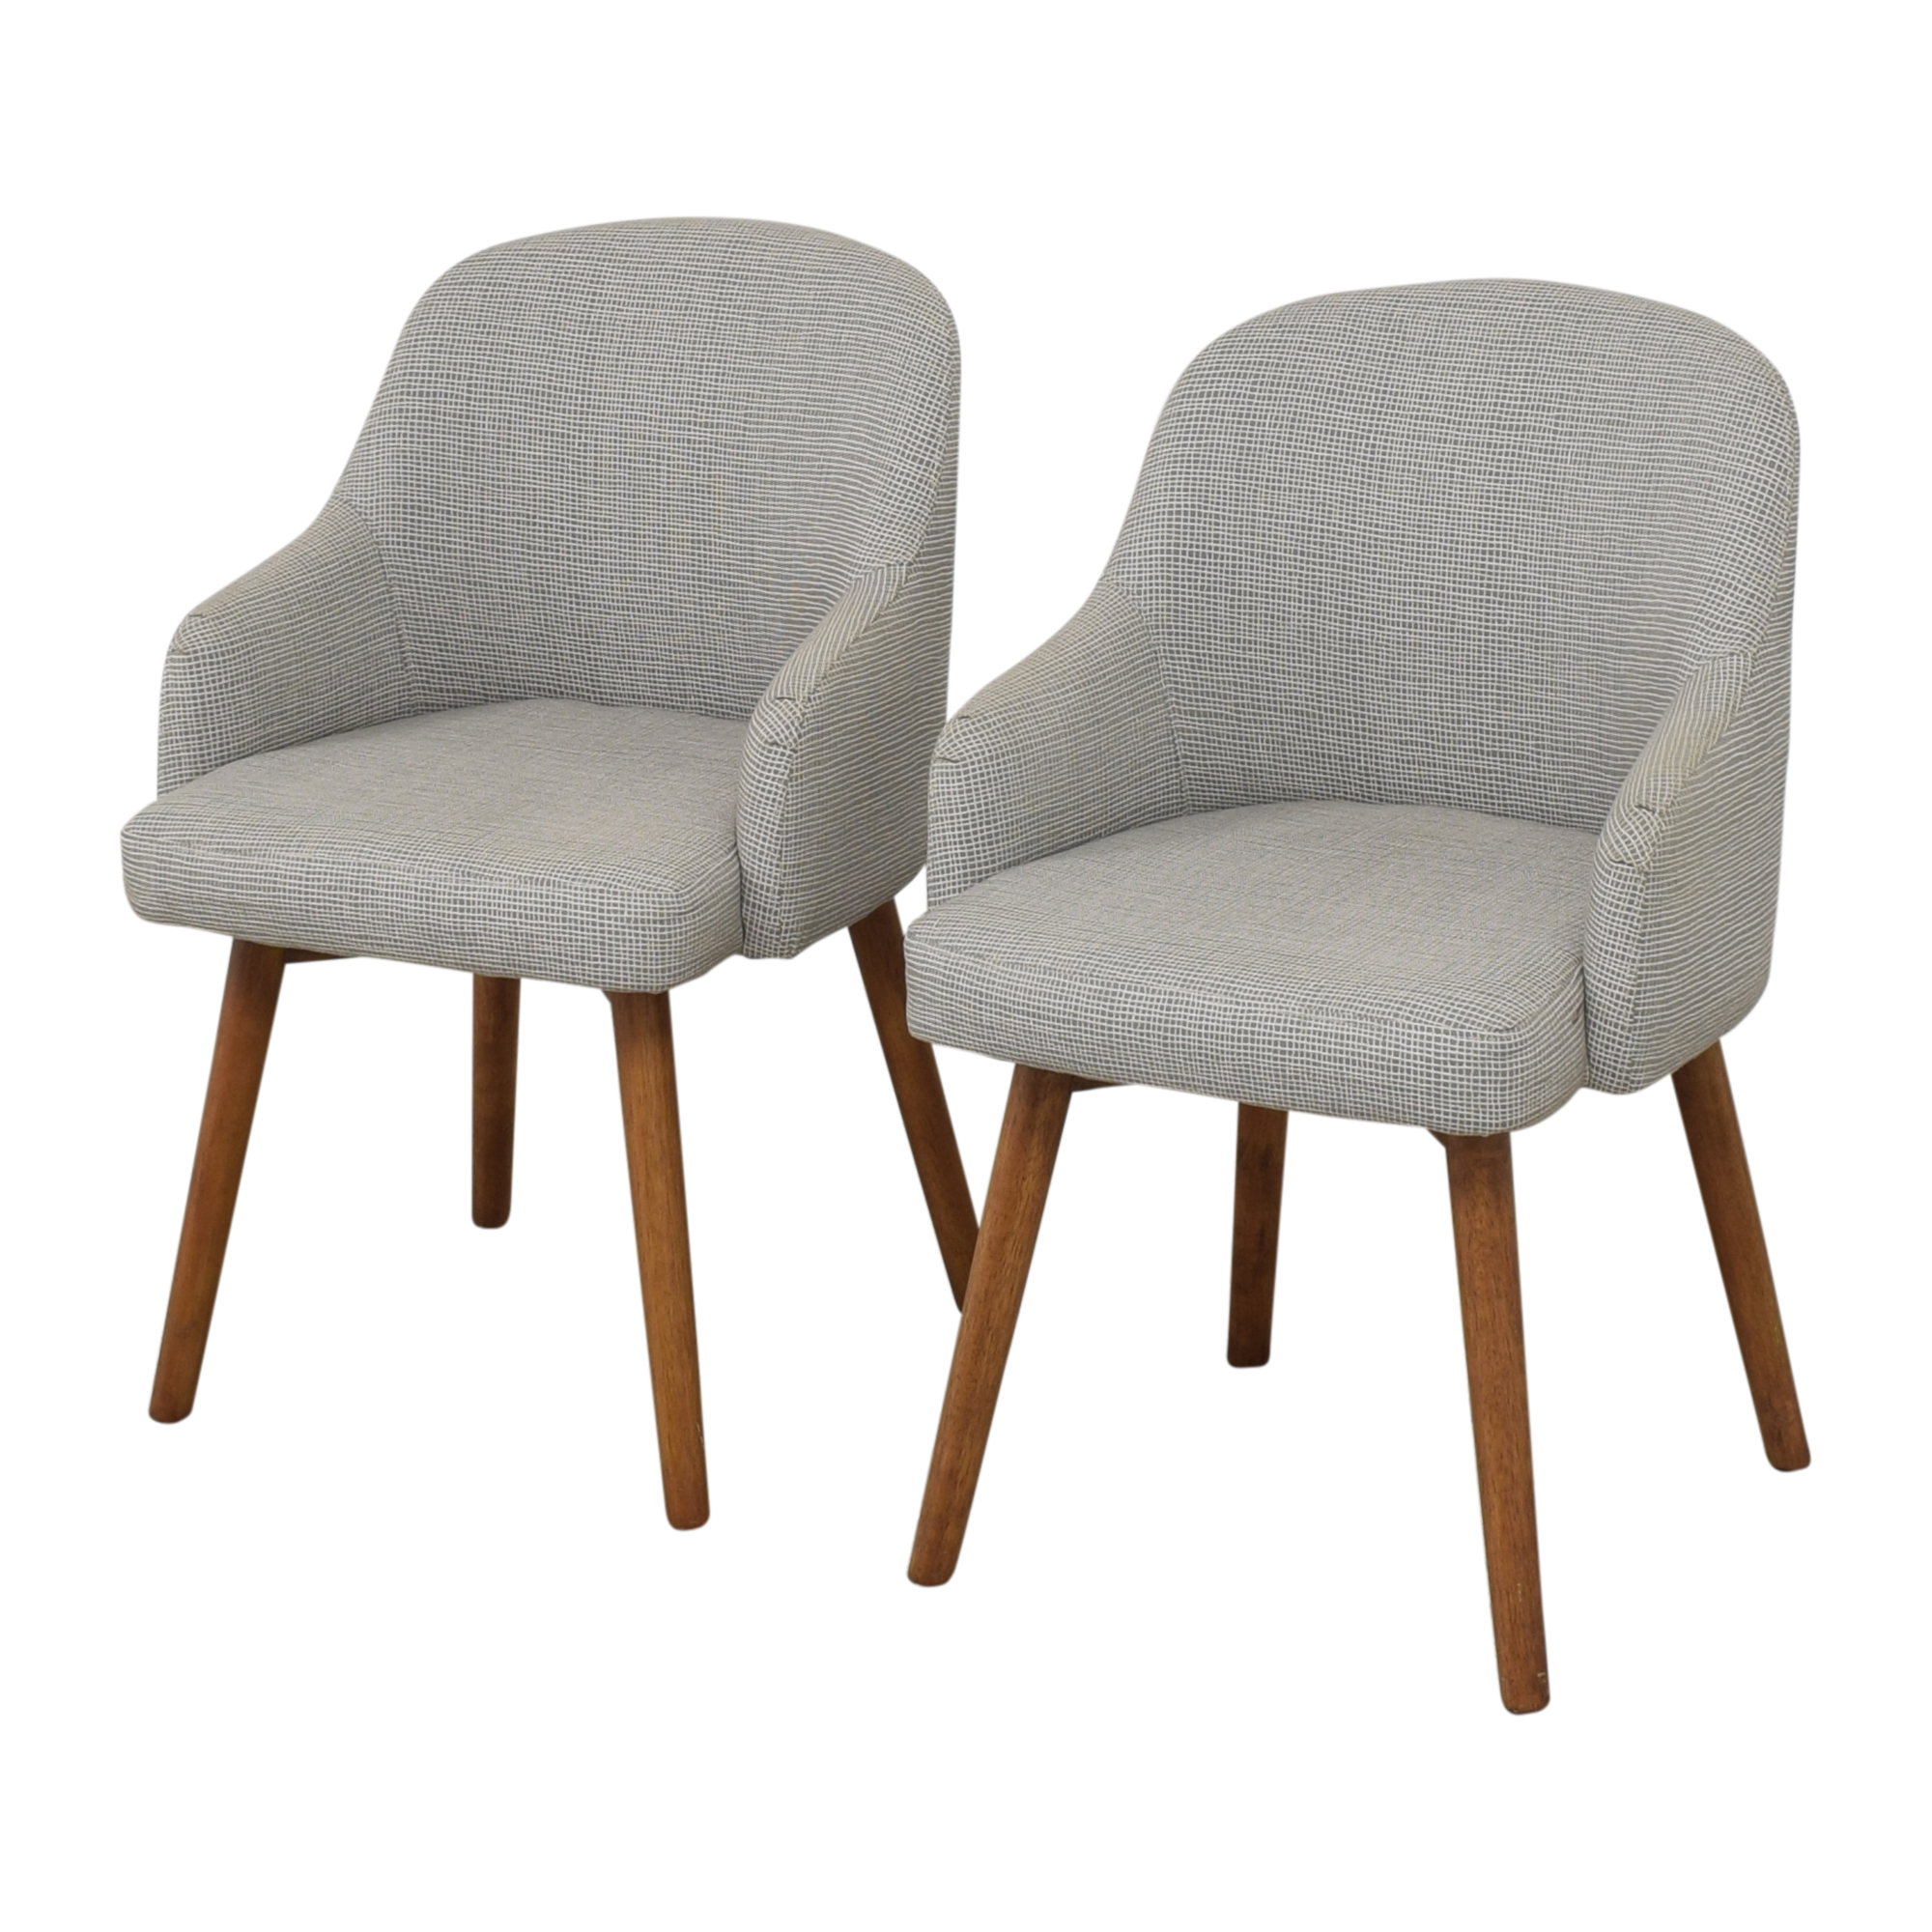 West Elm West Elm Saddle Dining Chairs Chairs